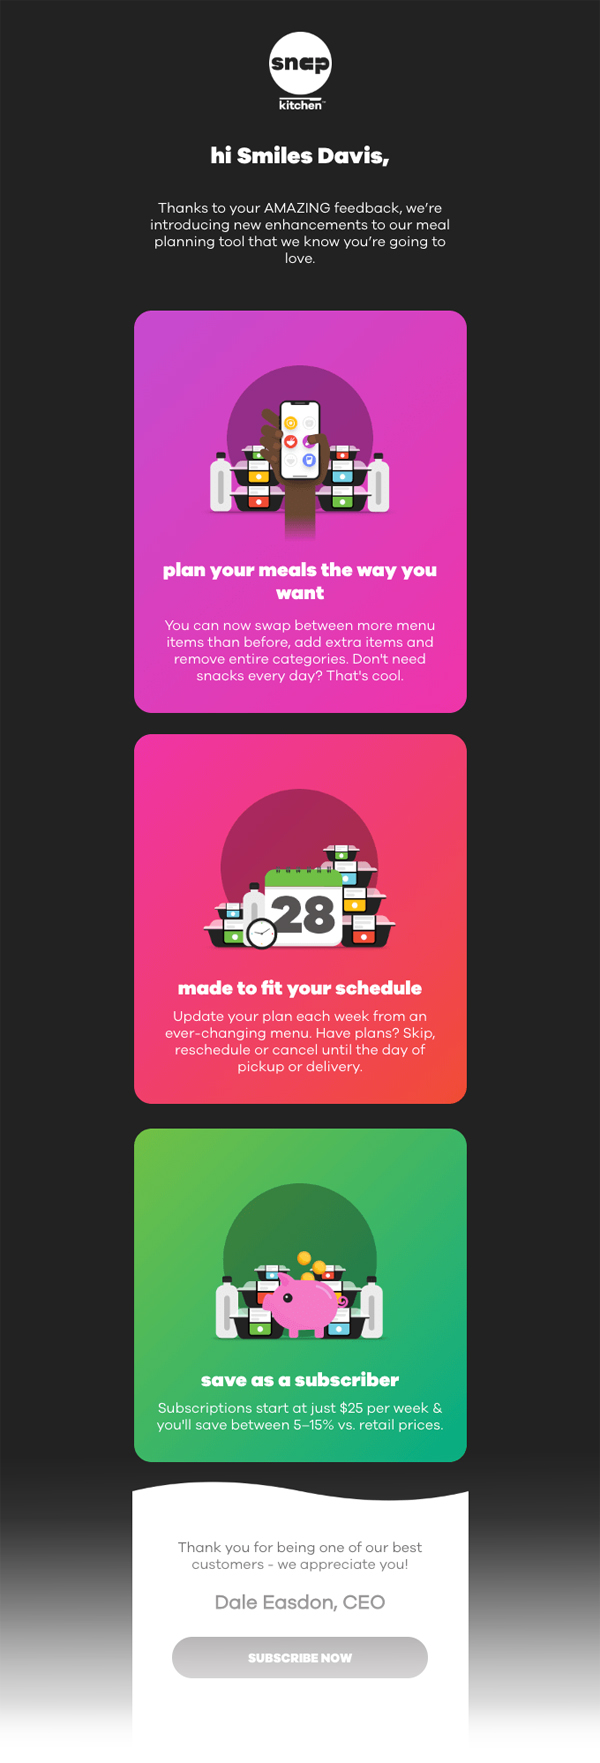 email design trends 2019 gradients